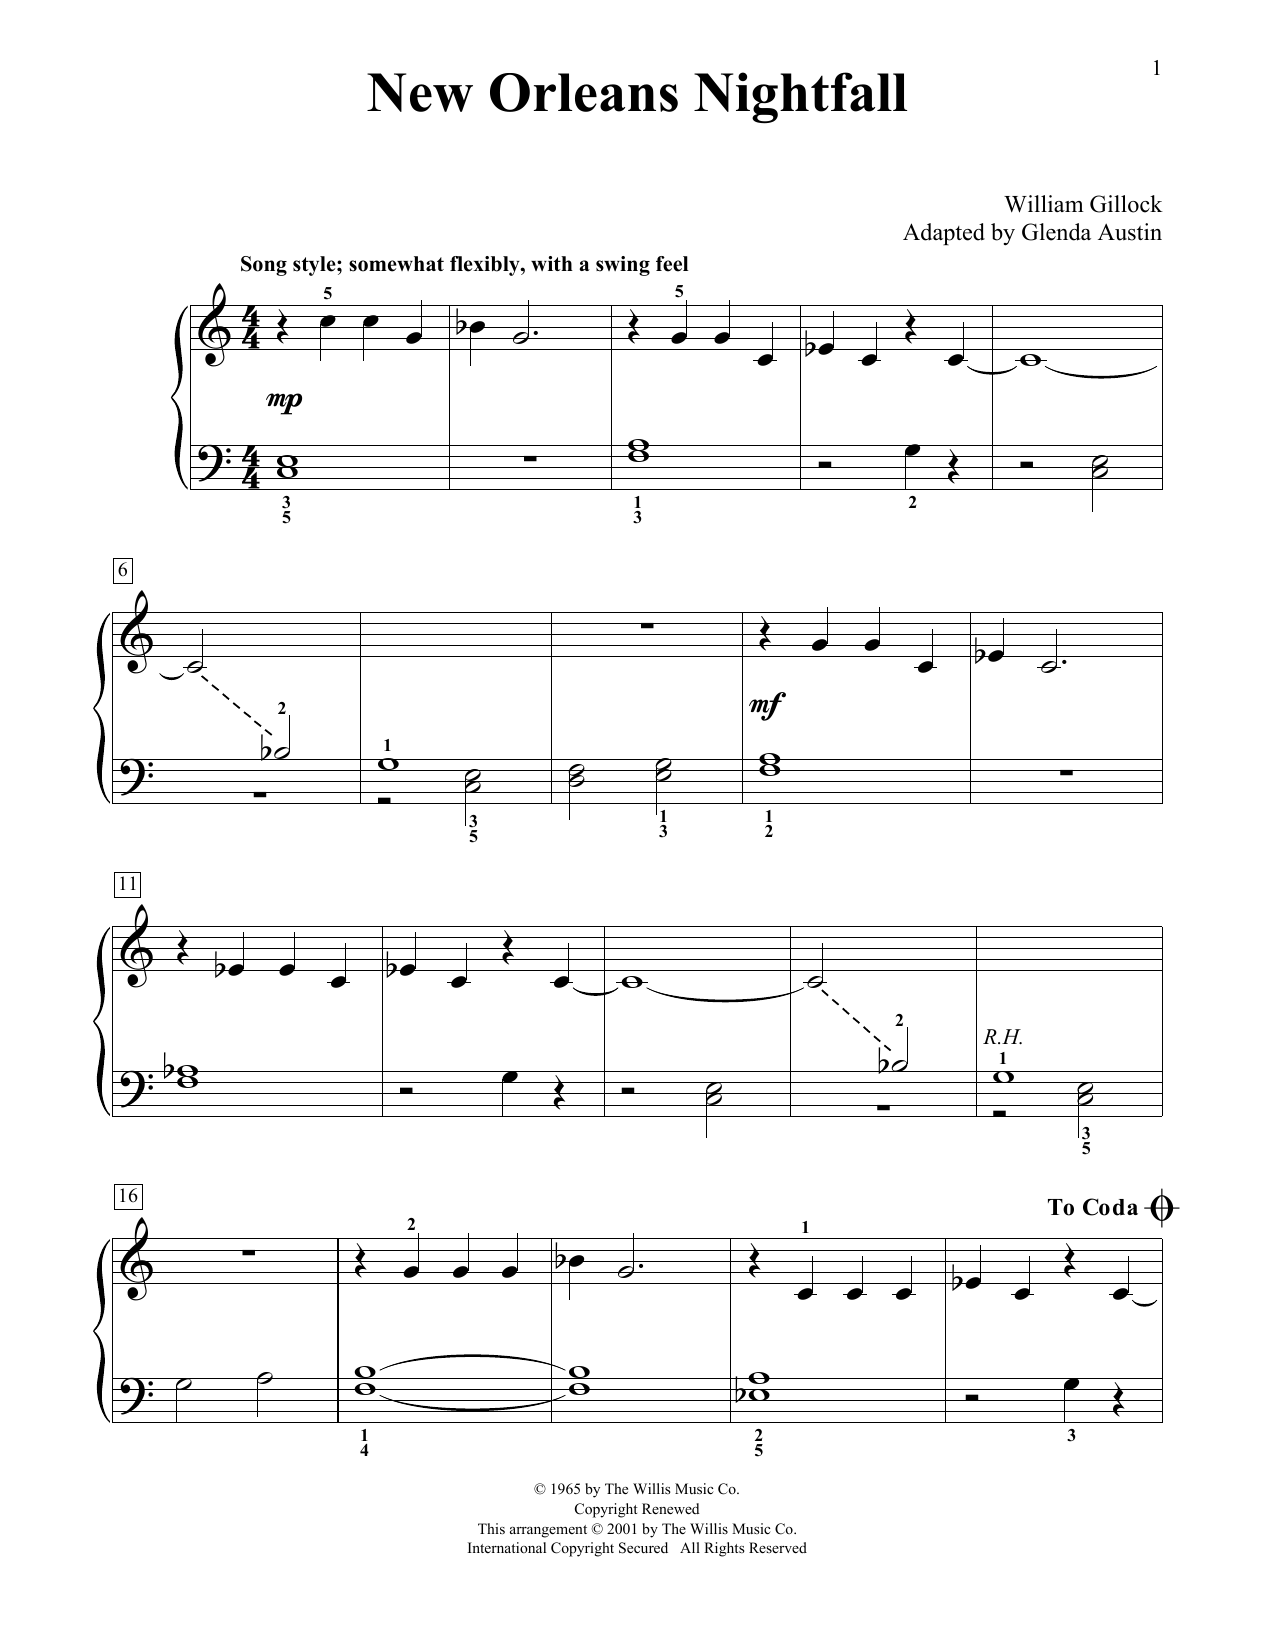 William Gillock New Orleans Nightfall (Simplified) (adapted by Glenda Austin) sheet music notes printable PDF score